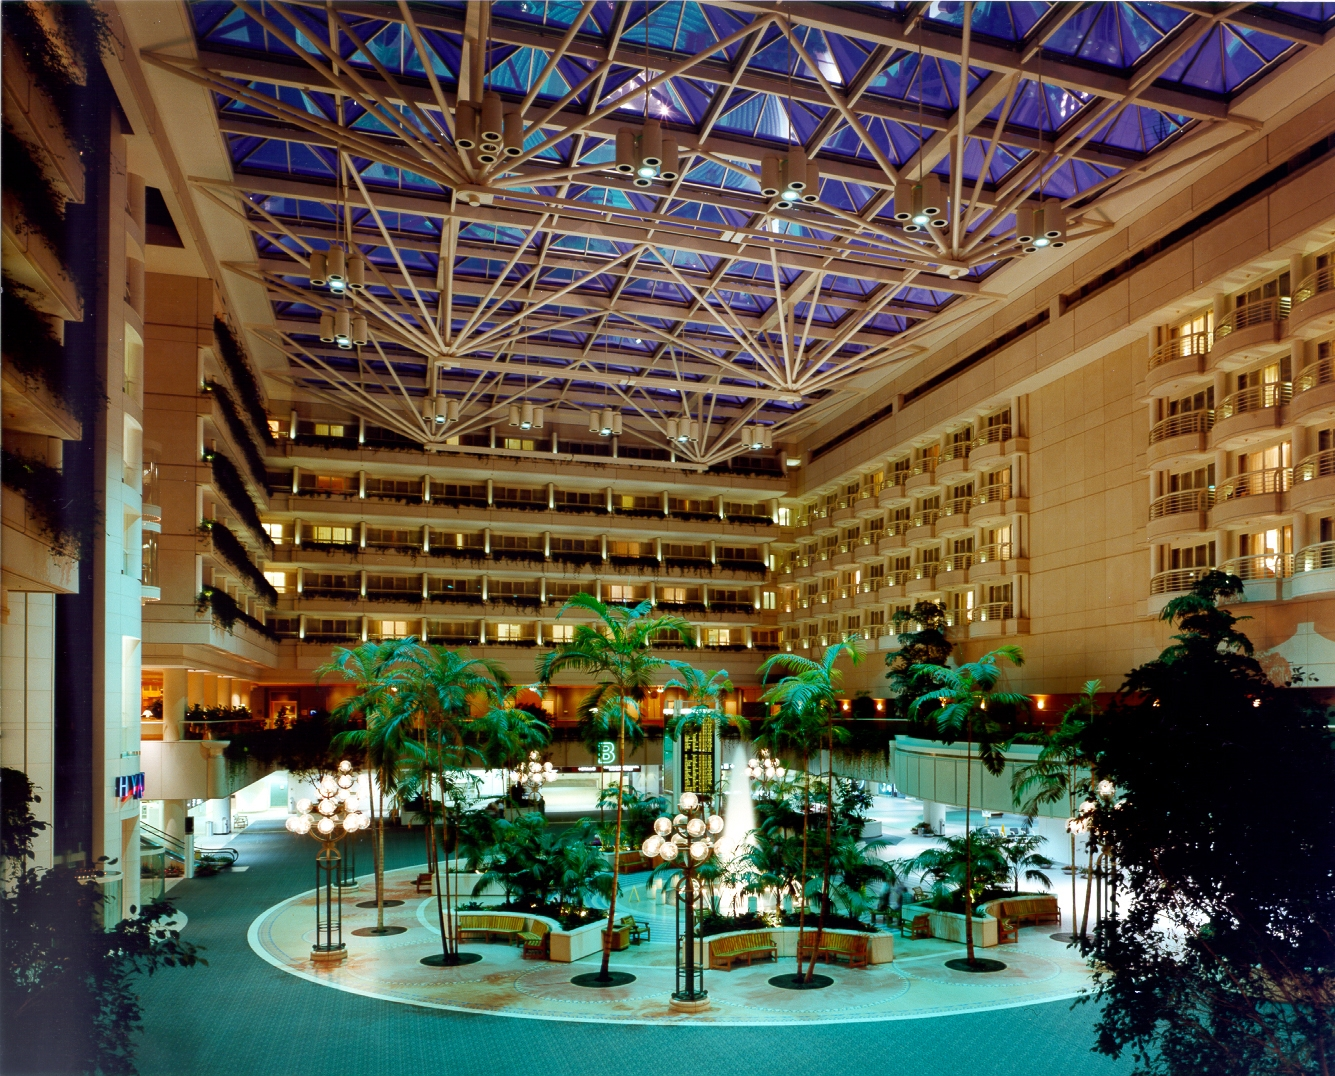 Hotel Atrium at Night